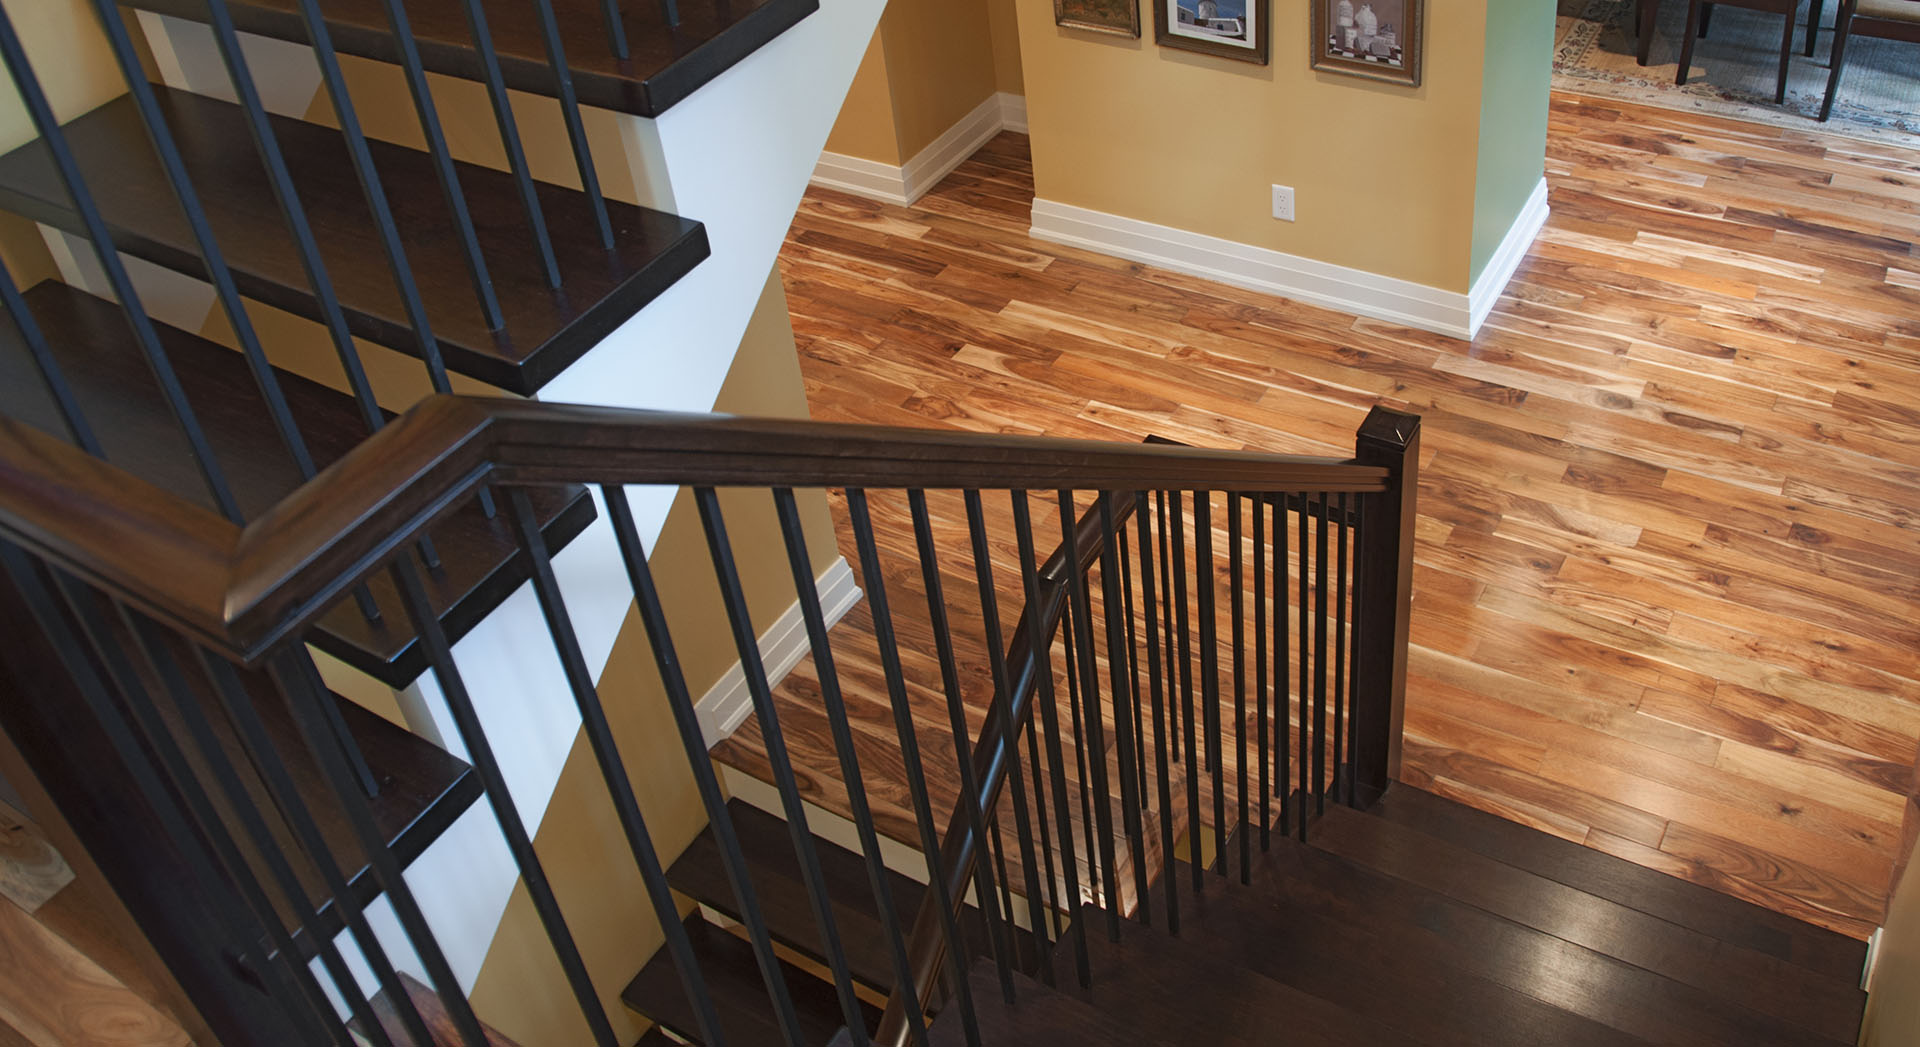 Campbell's Woodcraft Ottawa Stairs, Handrails, Recaps, Cabinetry, Furniture, Custom Woodwork.